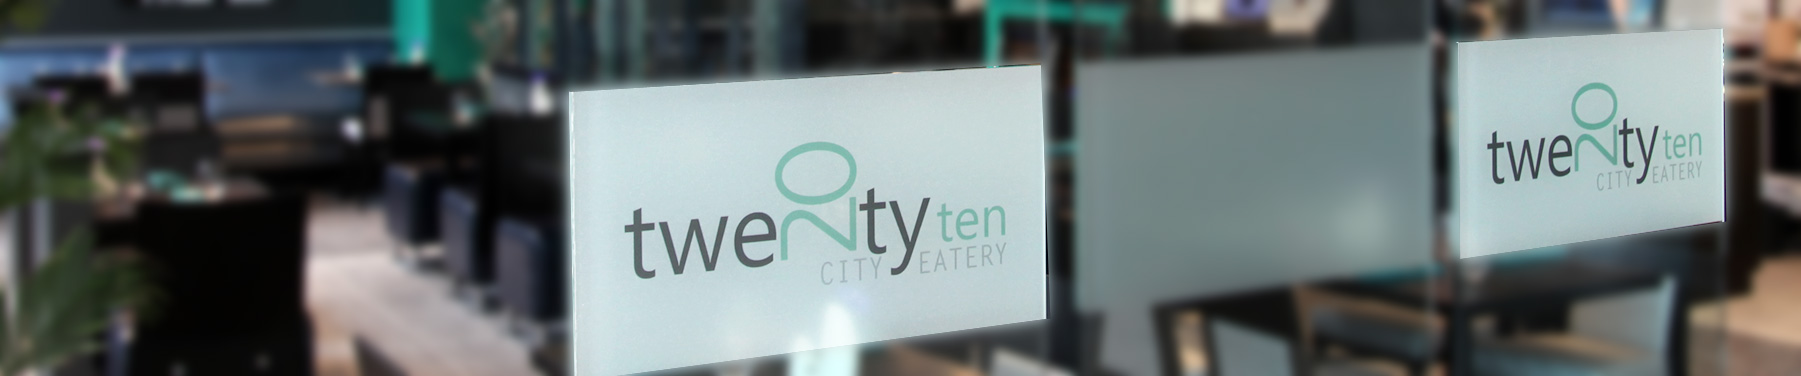 20Ten City Eatery